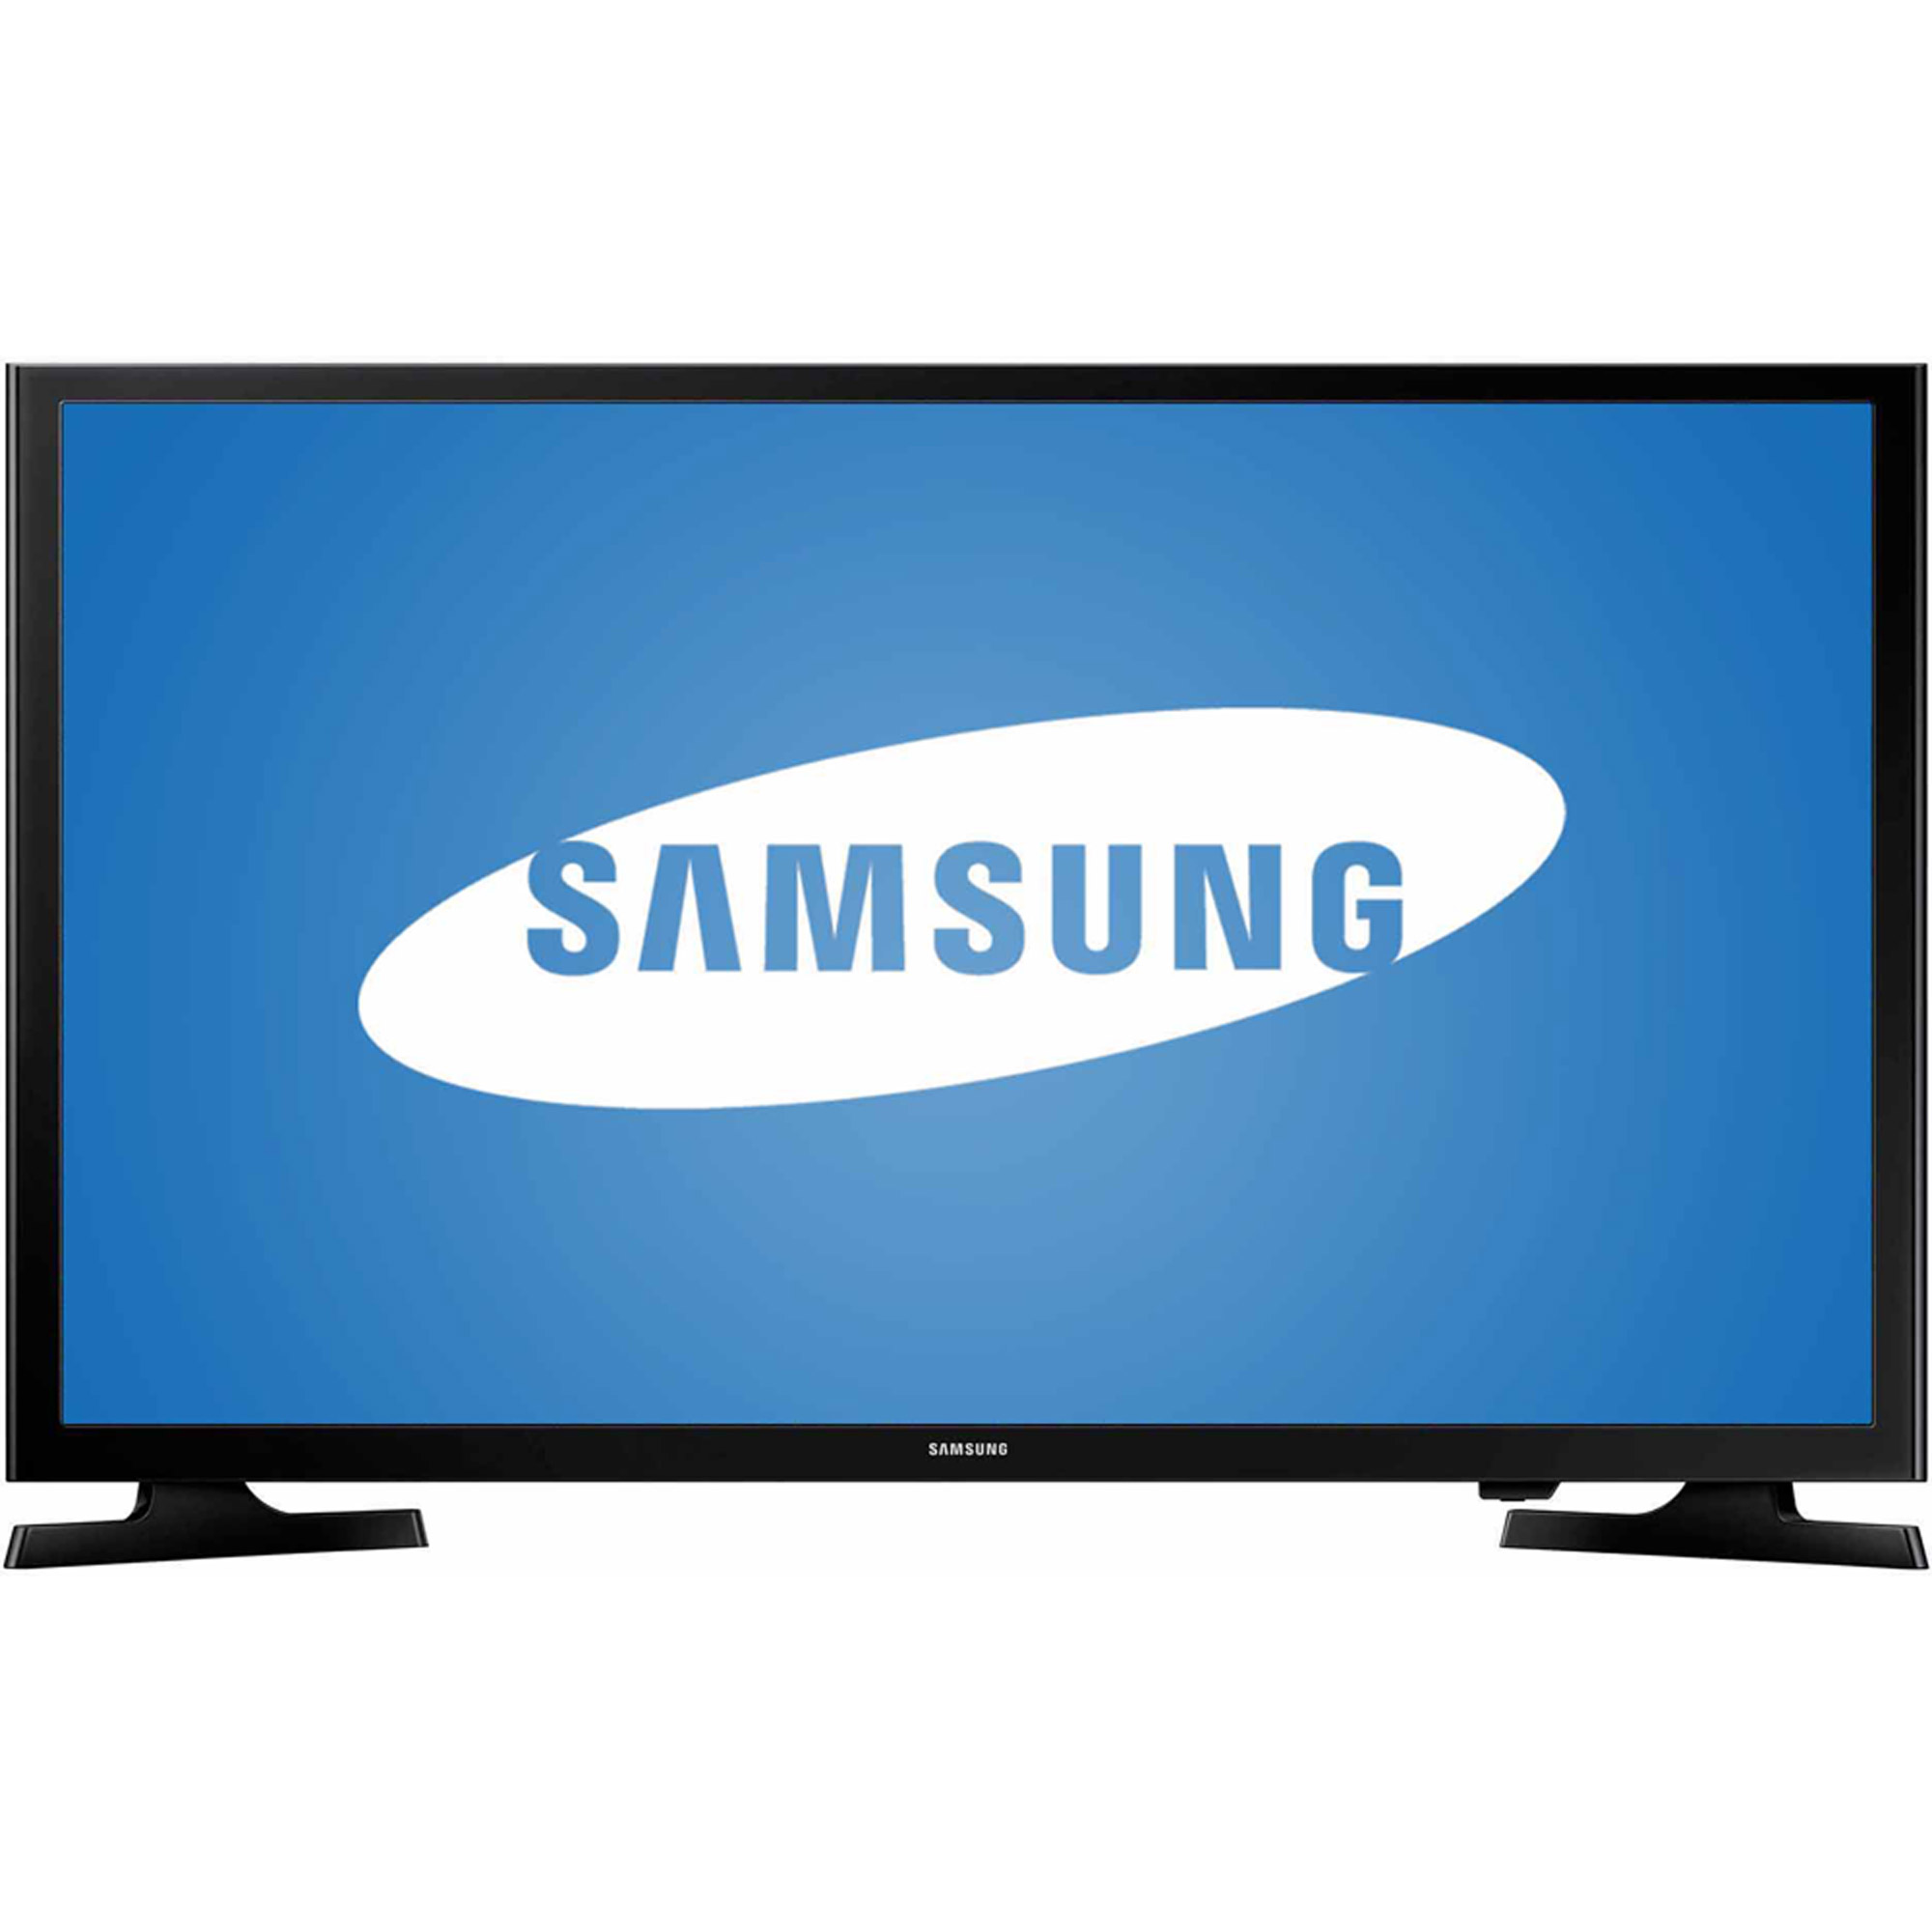 "SAMSUNG 32"" 4000 Series - HD LED TV - 720p, 120MR (Model#: UN32J4000)"